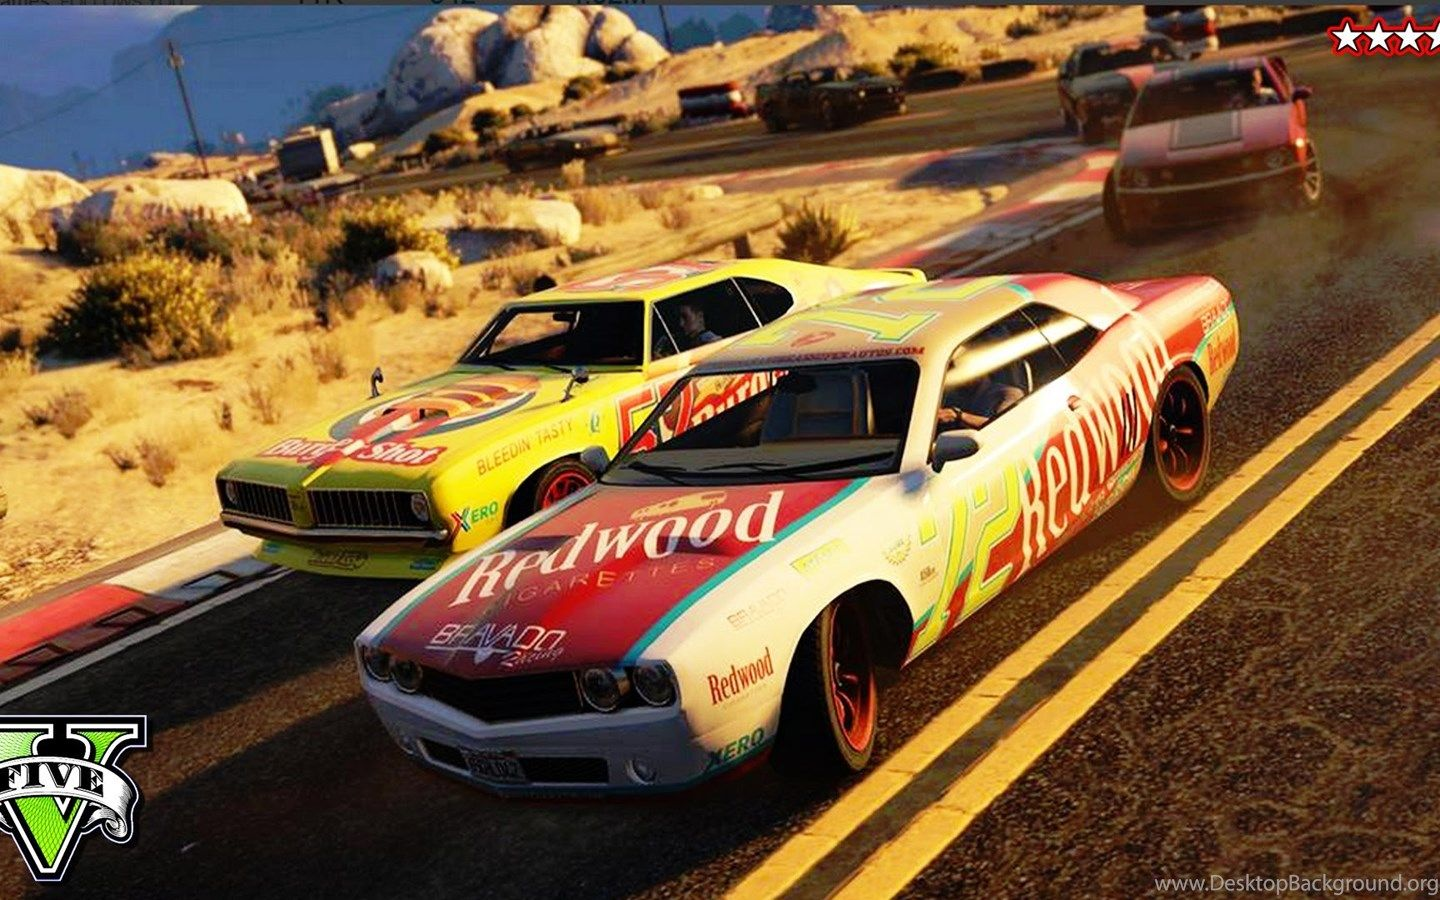 Epic Gta 5 Wallpapers Top Free Epic Gta 5 Backgrounds